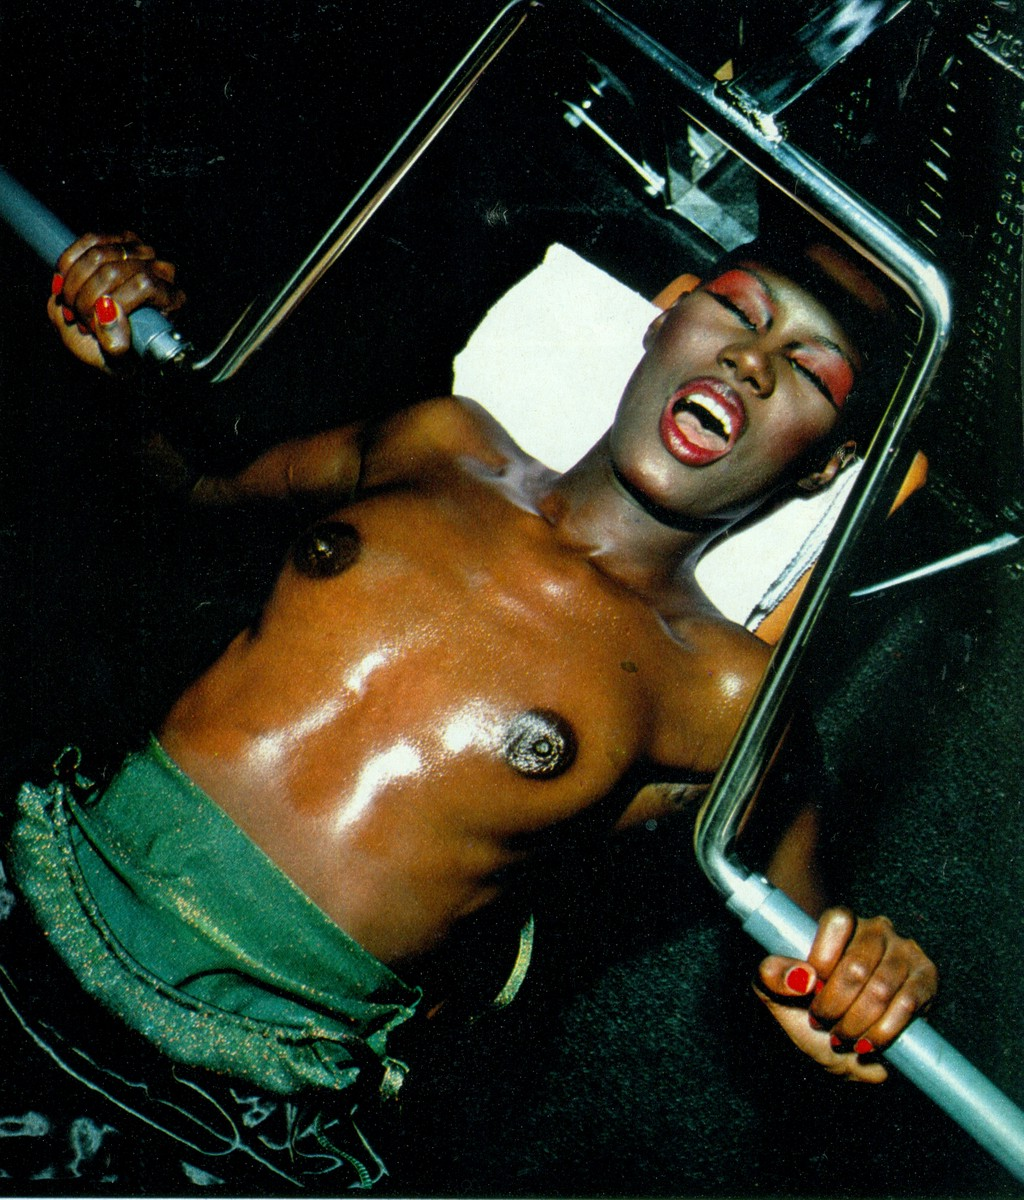 Schwarzenegger grace jones arnold